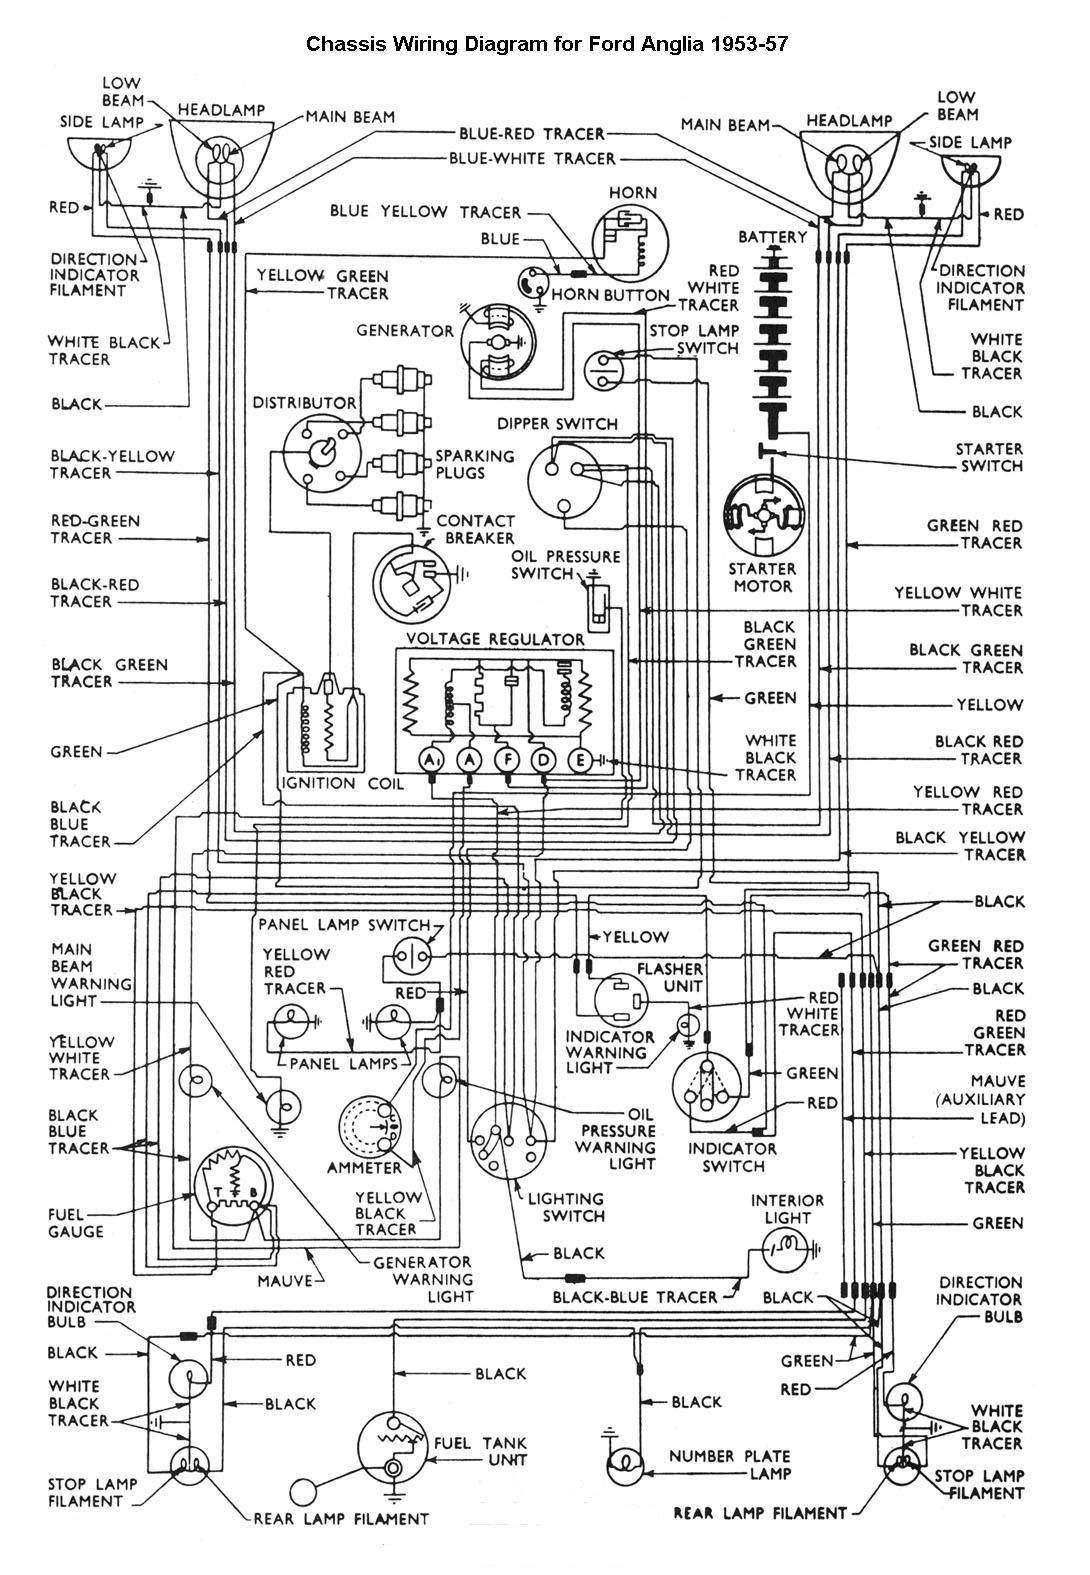 car wiring diagram mech truck repair cars engine repair can bus diagram http wwwjustanswercom bmw 4jkbibmw535ihi [ 1090 x 1575 Pixel ]